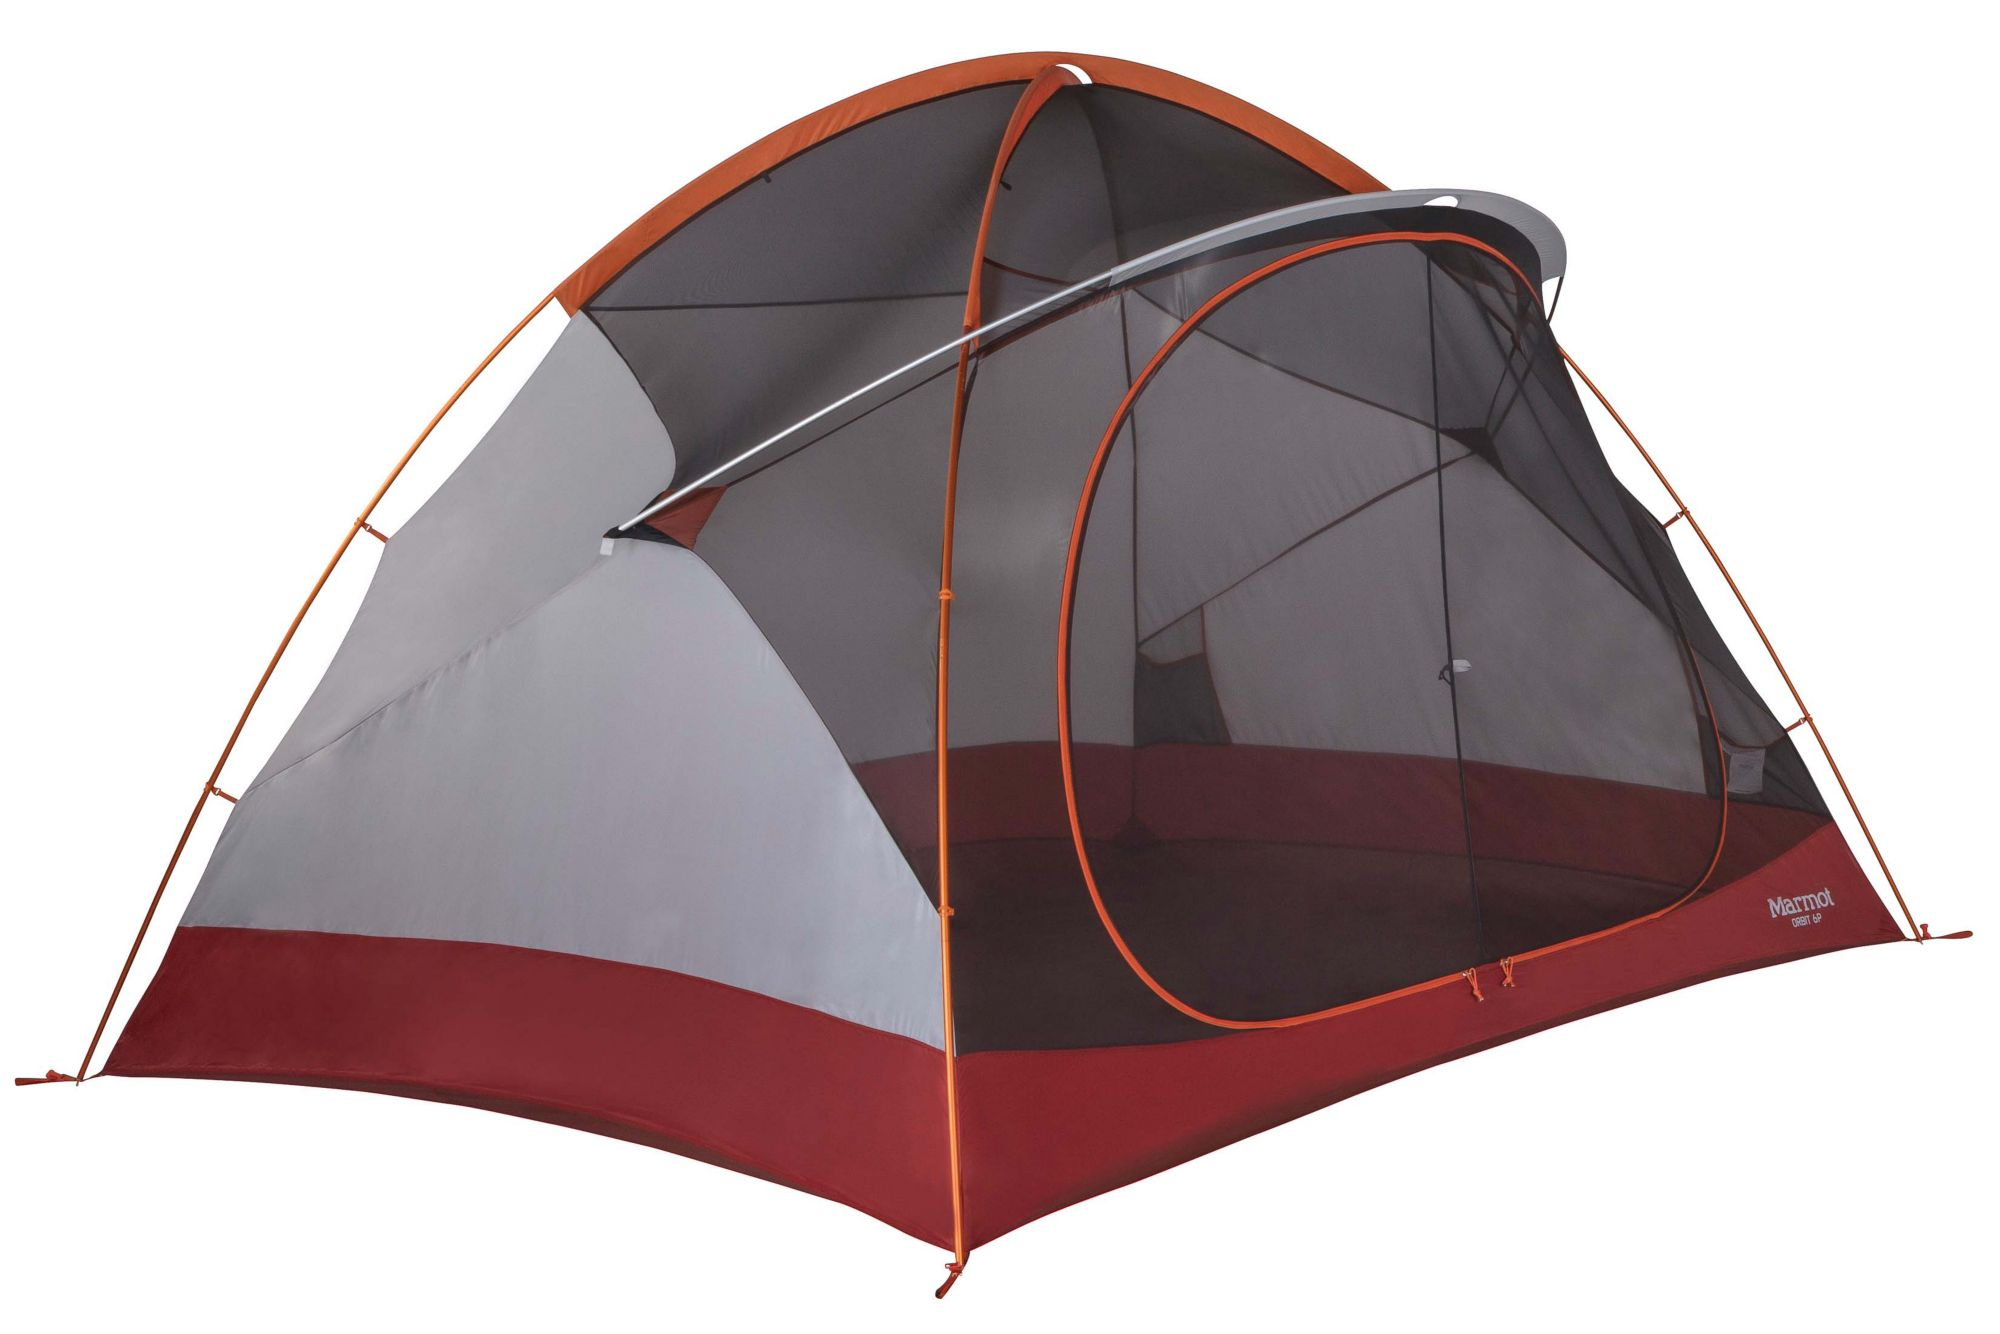 Orbit 6P Orange Spice/Arona medium  sc 1 st  Marmot & 6 Person Tents / Tents / Equipment | Marmot.com